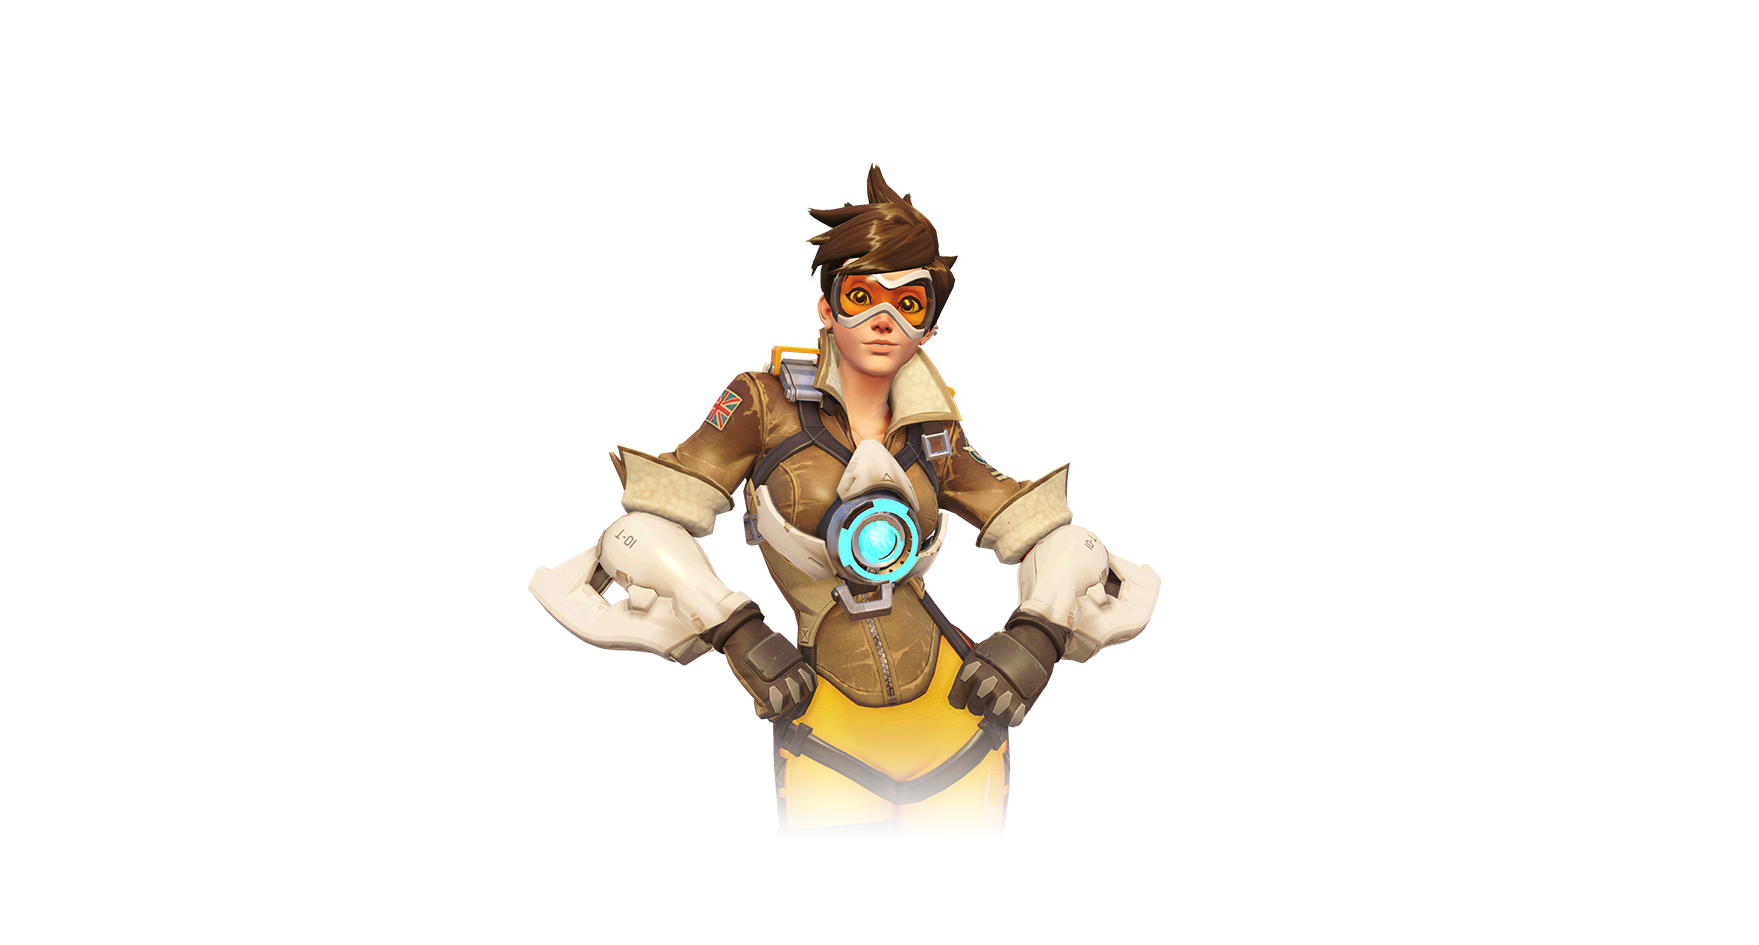 Overwatch gif png. Characters transparent background album